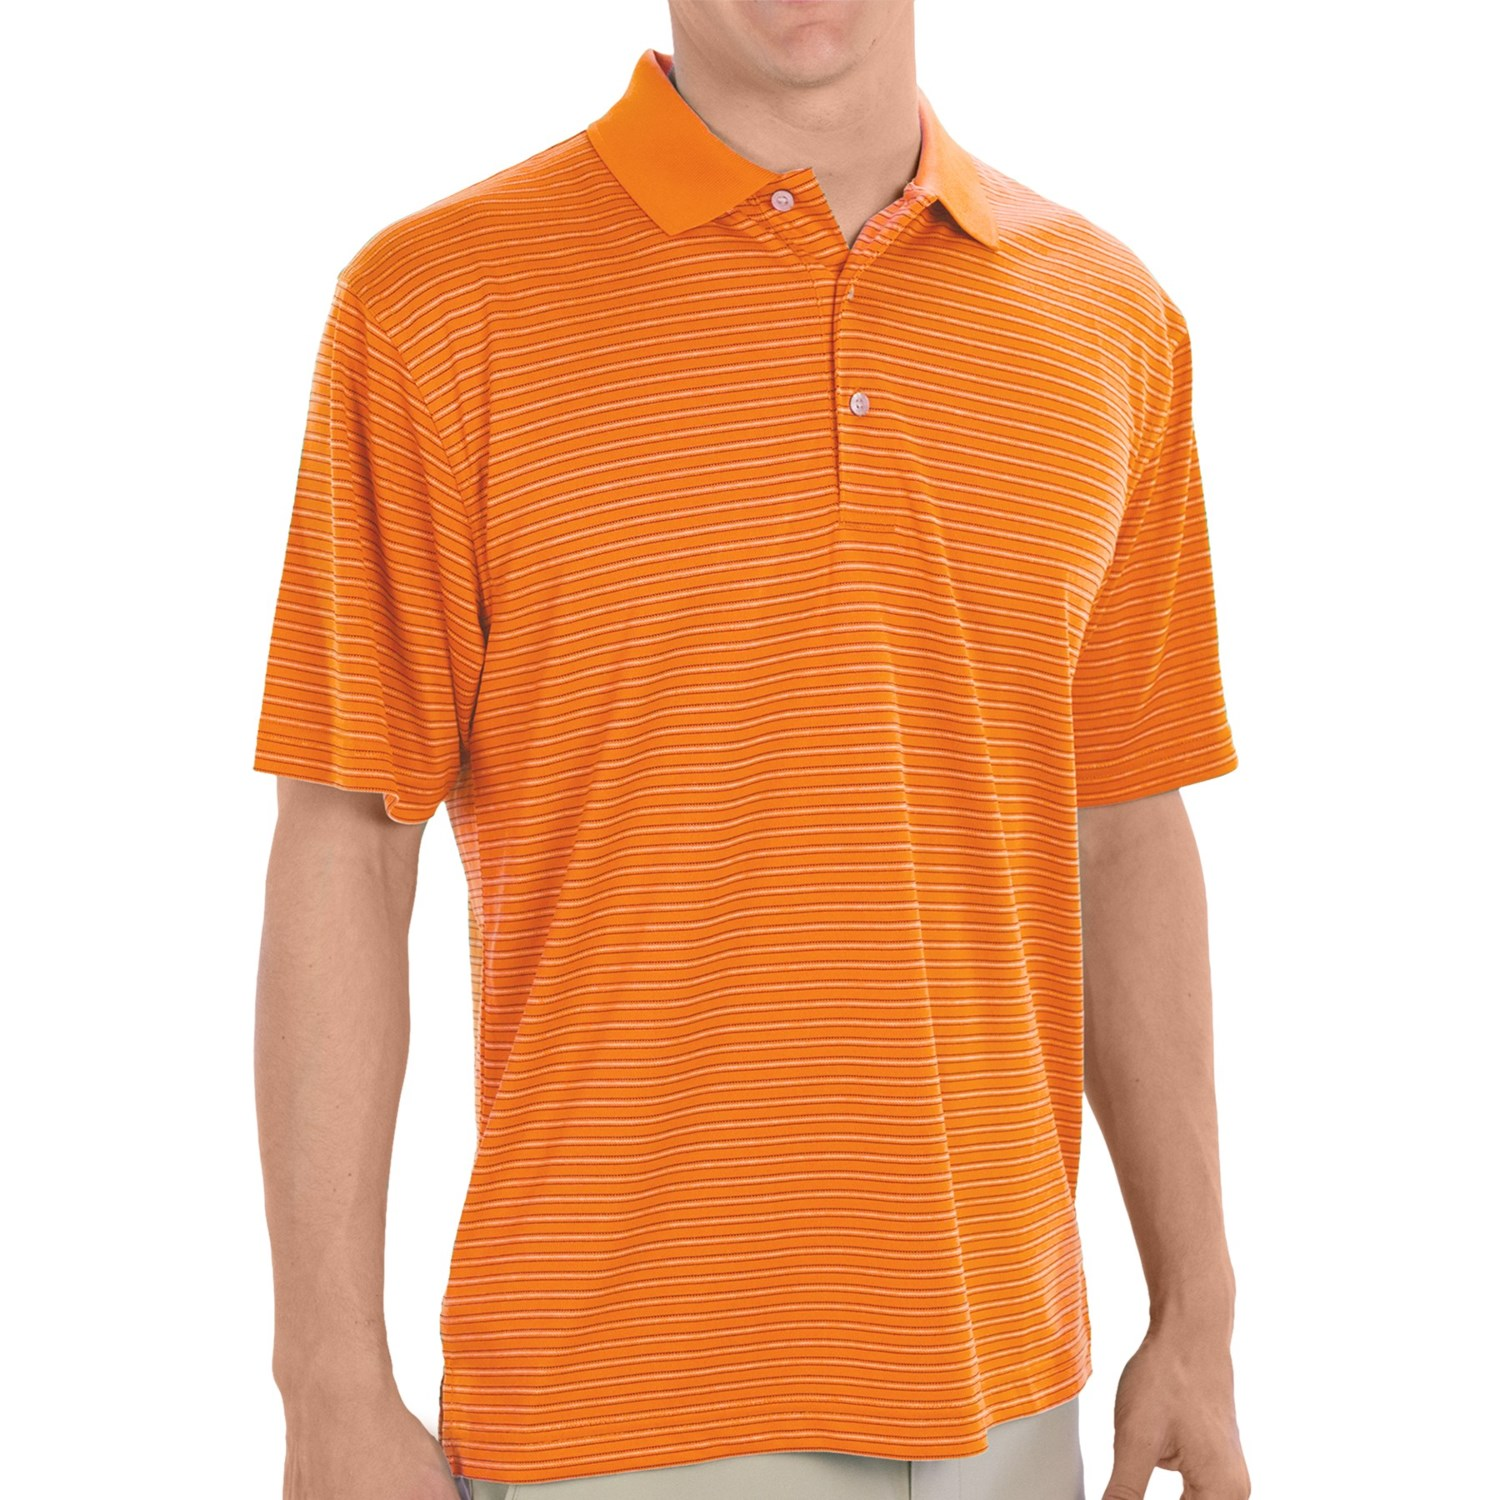 Pga tour shirts with pocket long sweater jacket for The tour jacket polo shirt